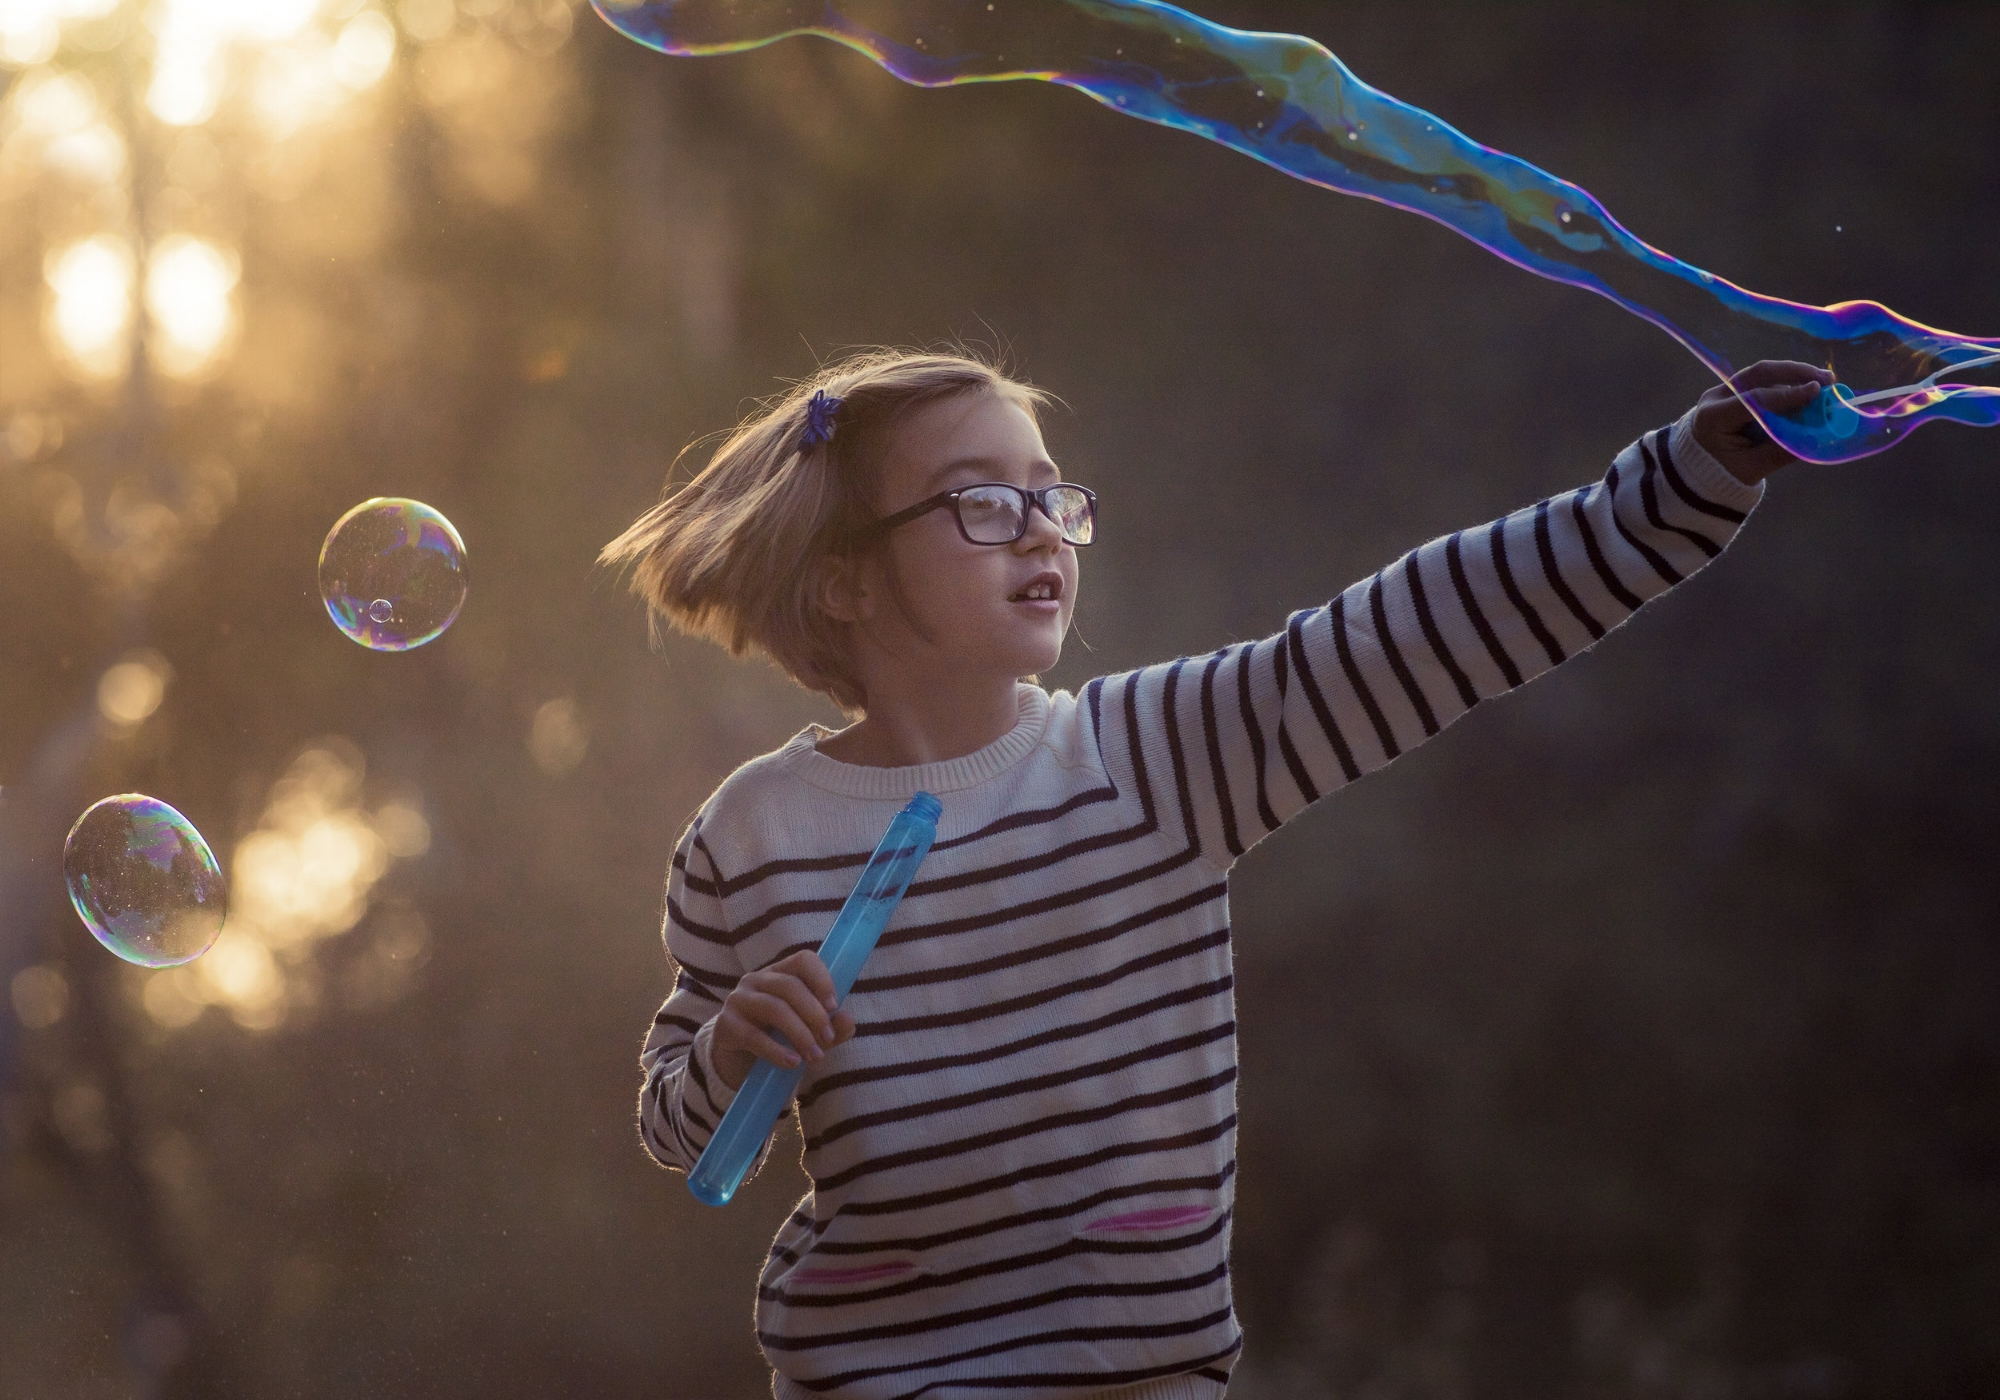 Girl waving a bubble wand with a golden sky behind her